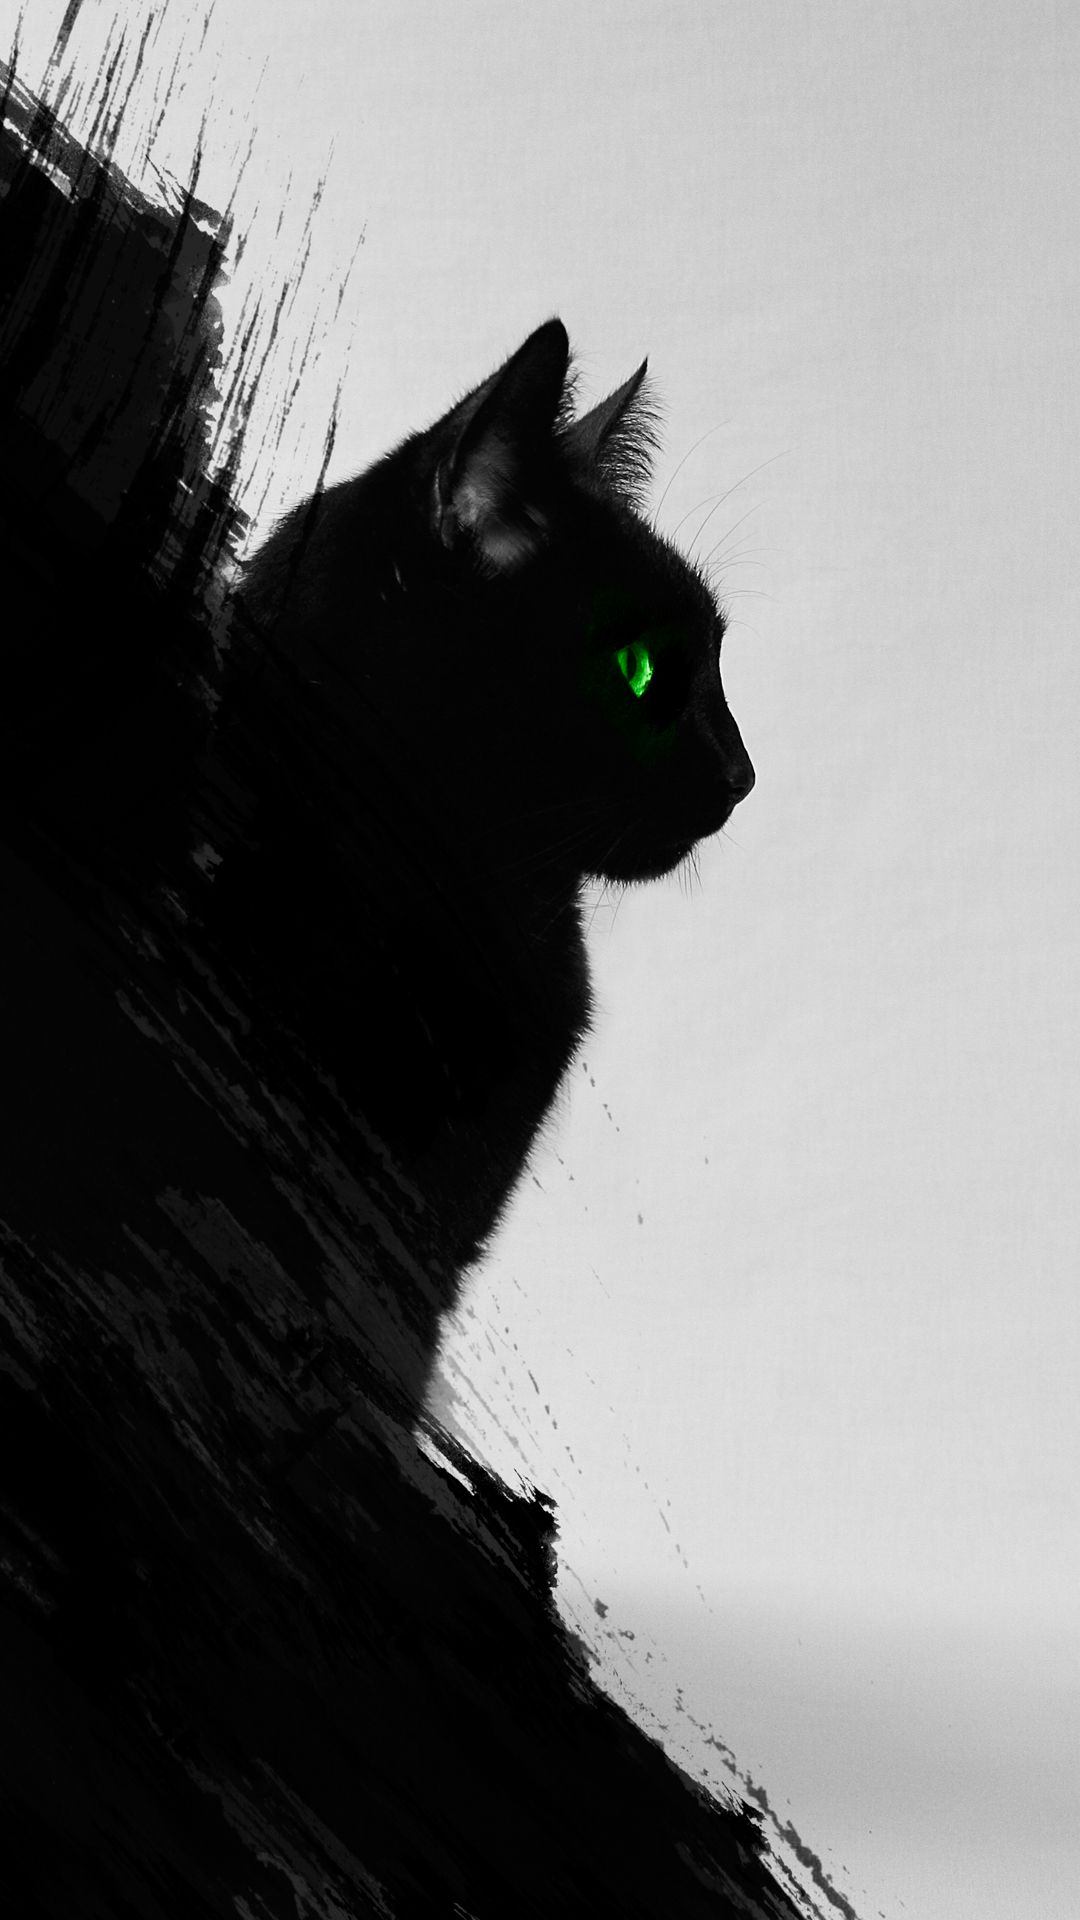 11 Cool Cat Iphone Wallpaper You Must Know in 2020 Cat